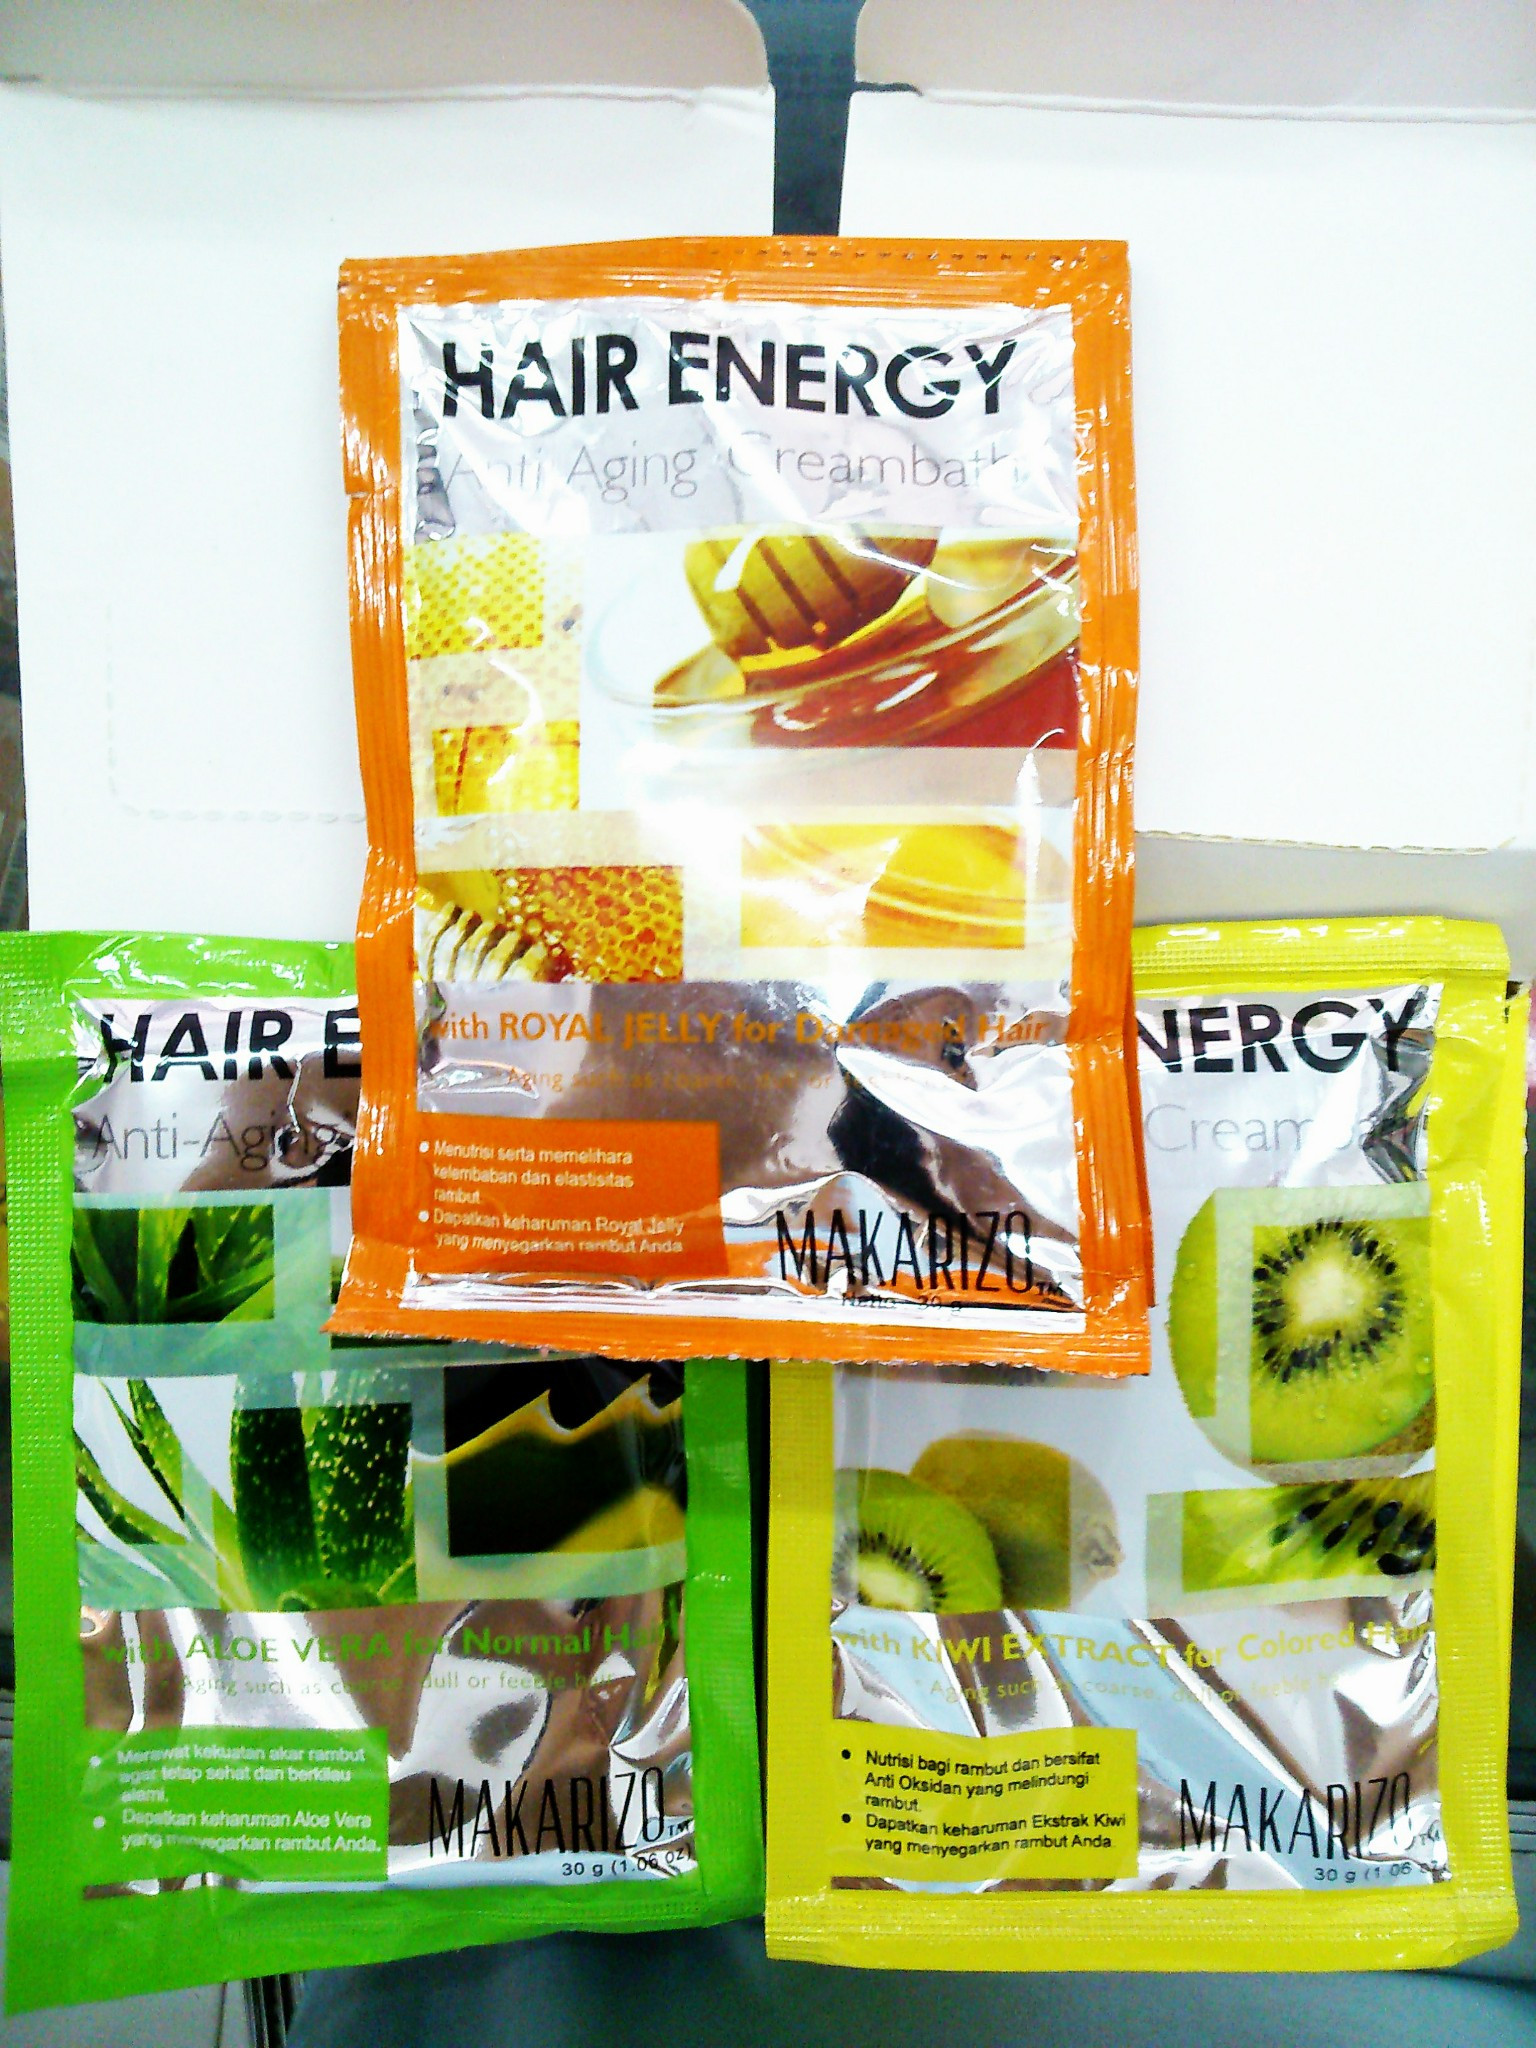 Makarizo Hair Energy